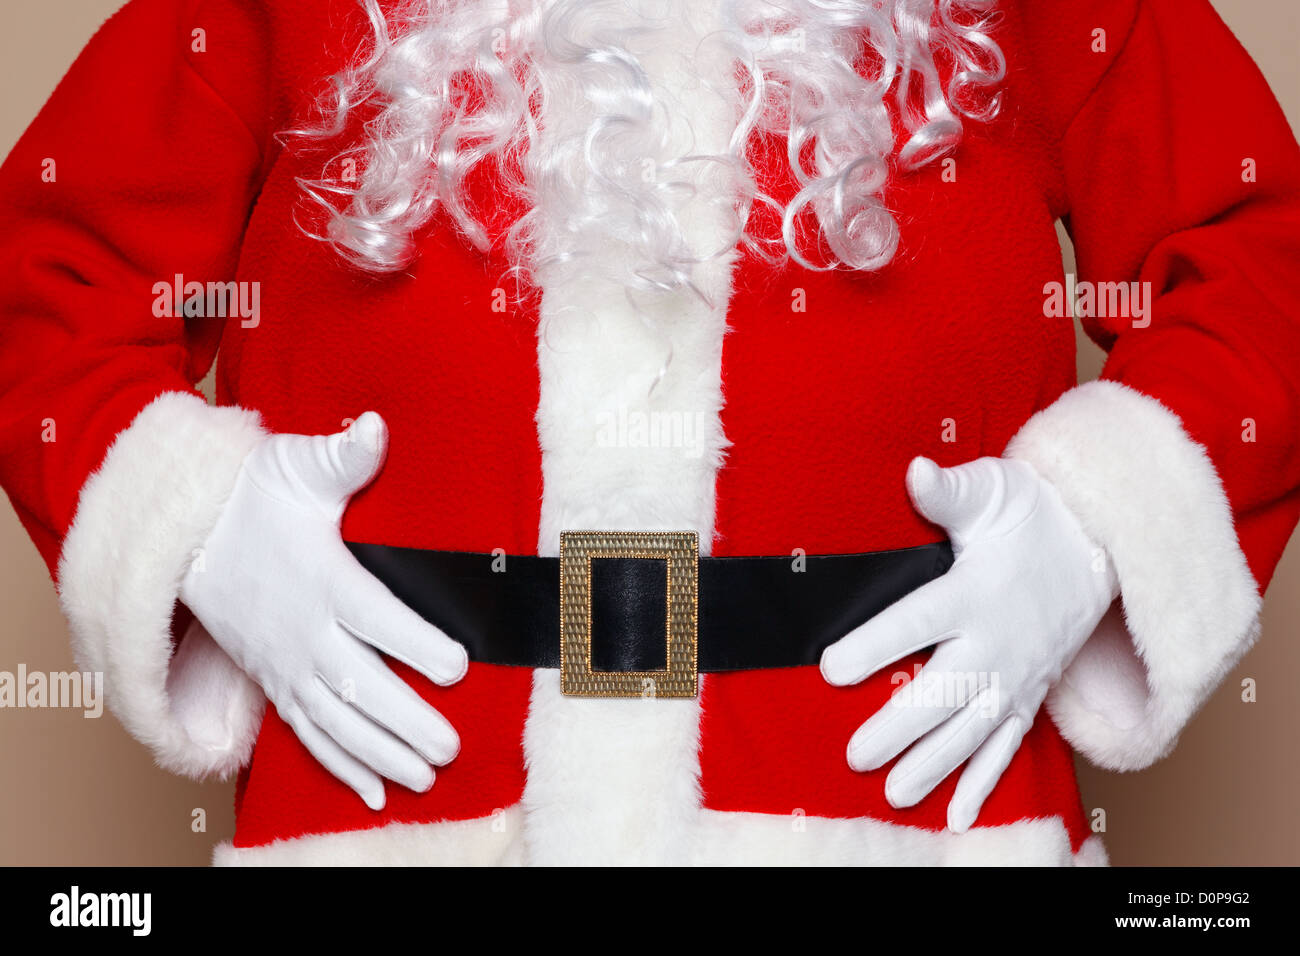 Santa Claus holding his belly, two many cookies I think. - Stock Image